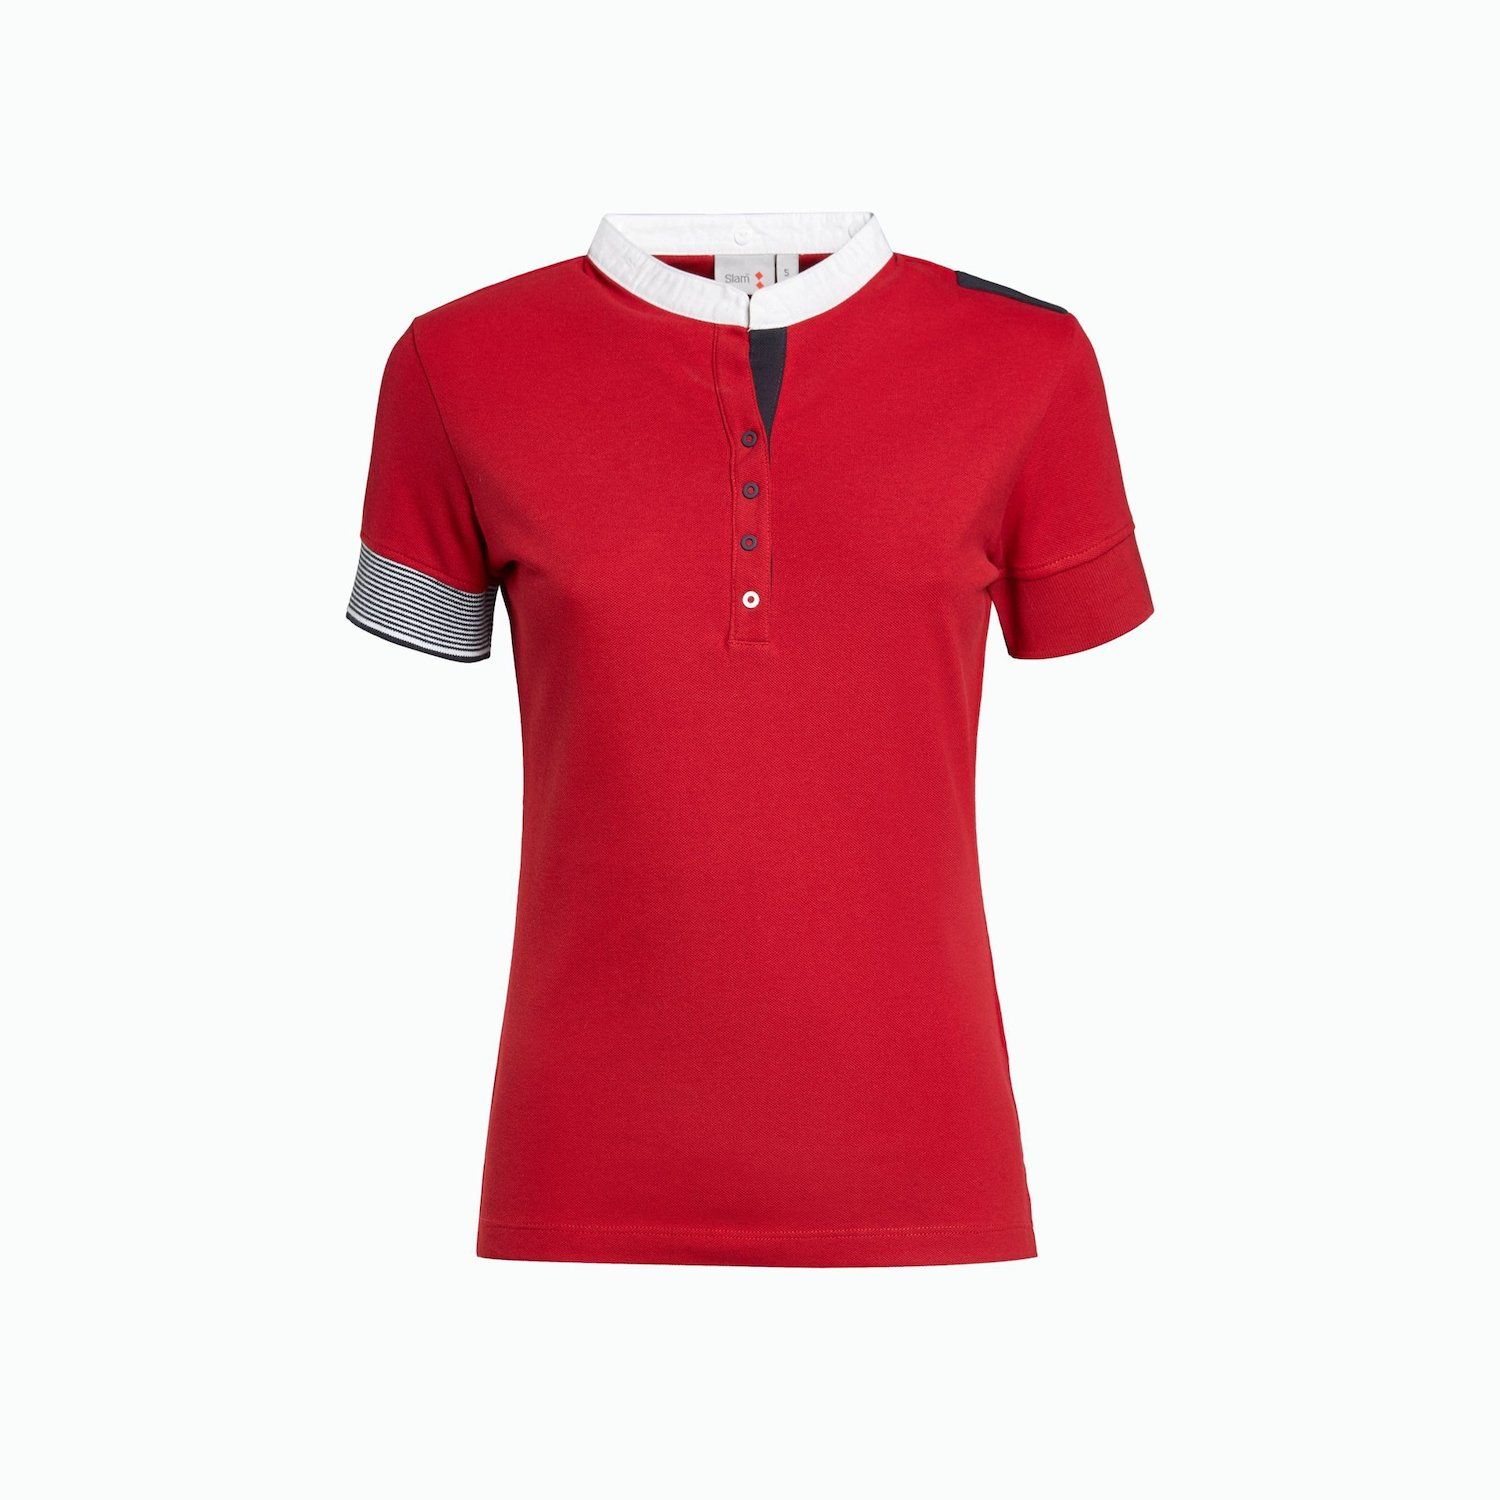 POLO BOOBY - Chili Red